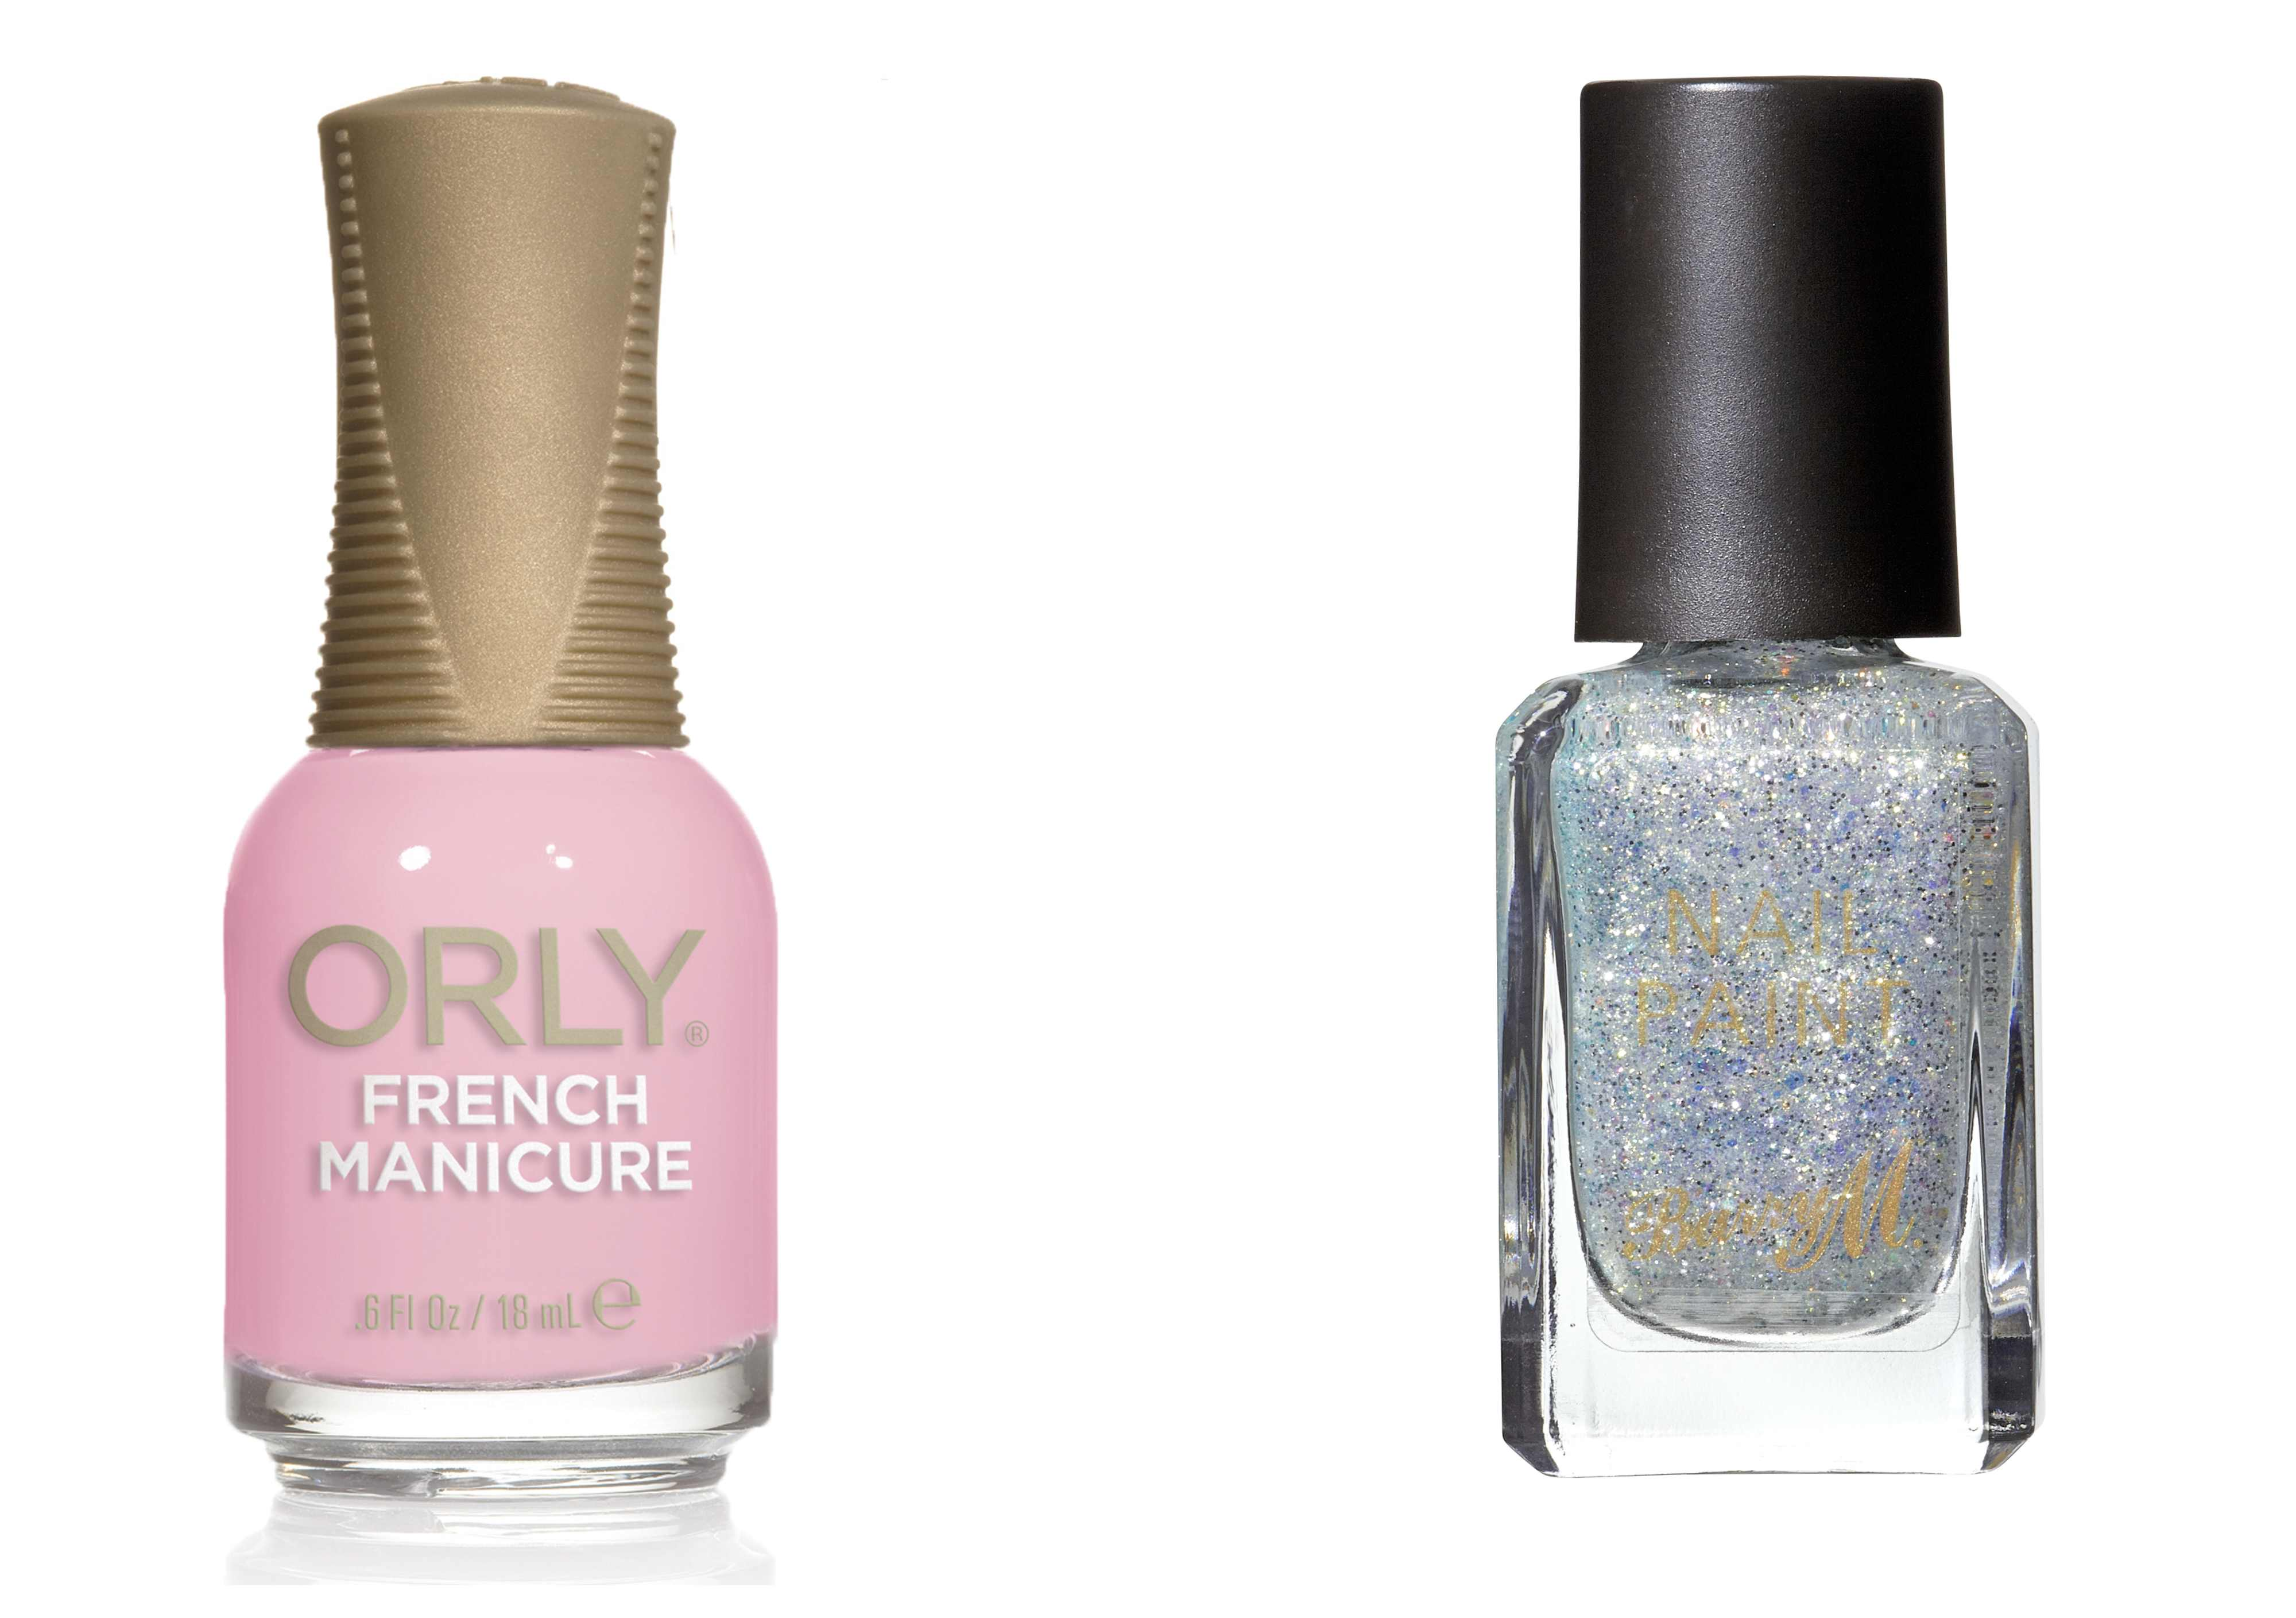 Orly Rose Coloured Glasses nail polish Barry M Classic Glitter Nail Paint in Whimsical Dreams (Orly/Barry M/PA)